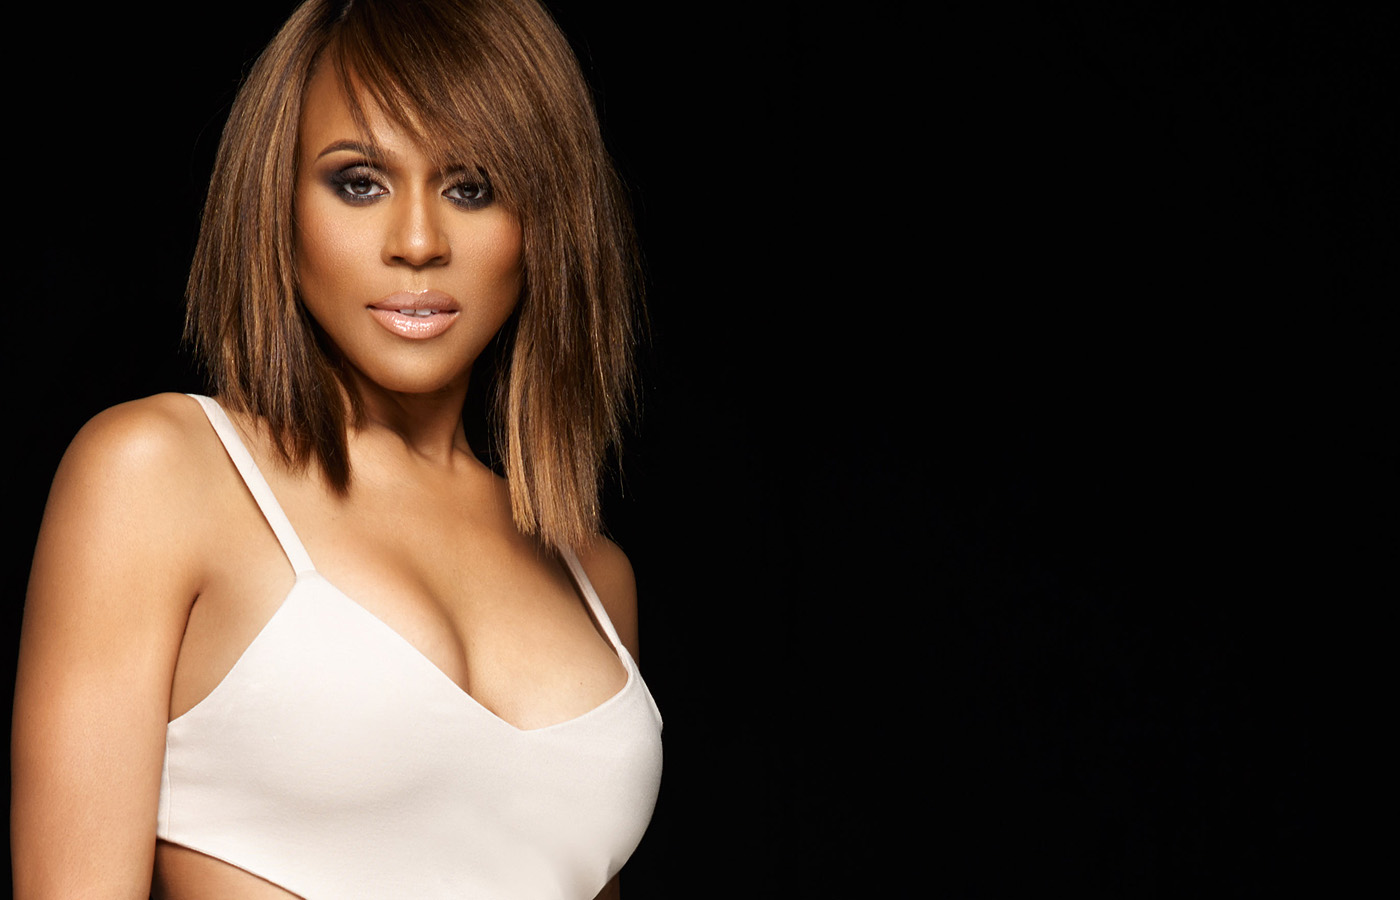 Deborah Cox nudes (61 photo), Tits, Is a cute, Instagram, braless 2019